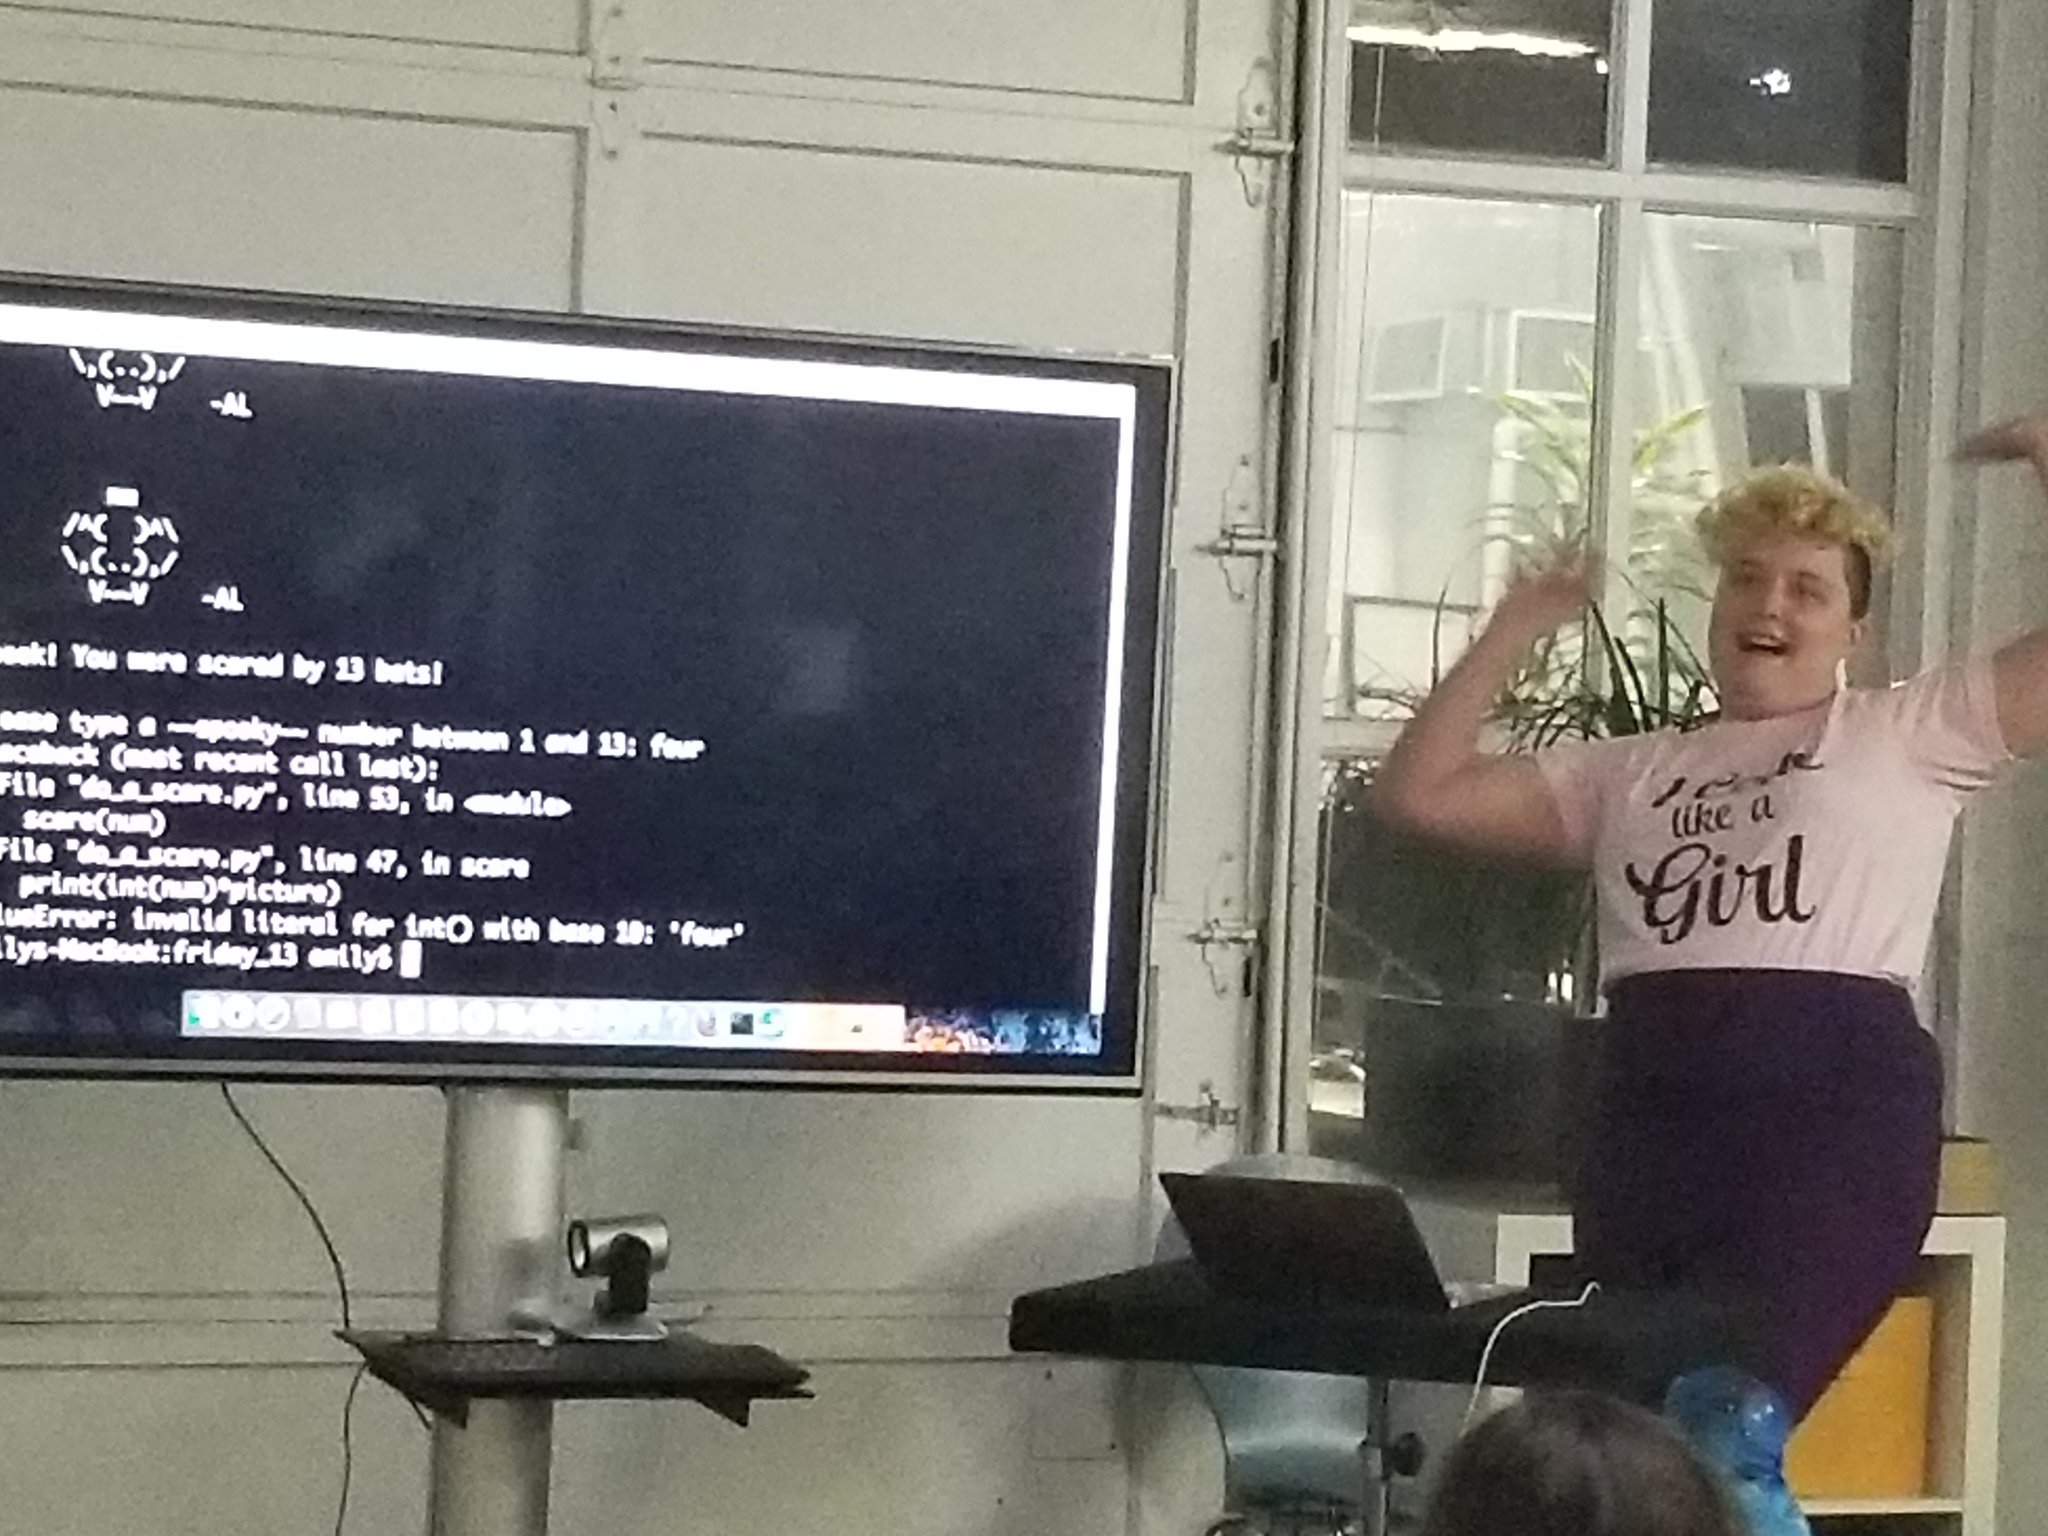 A picture of me presenting my spooky presentation, and screaming about a scary error message